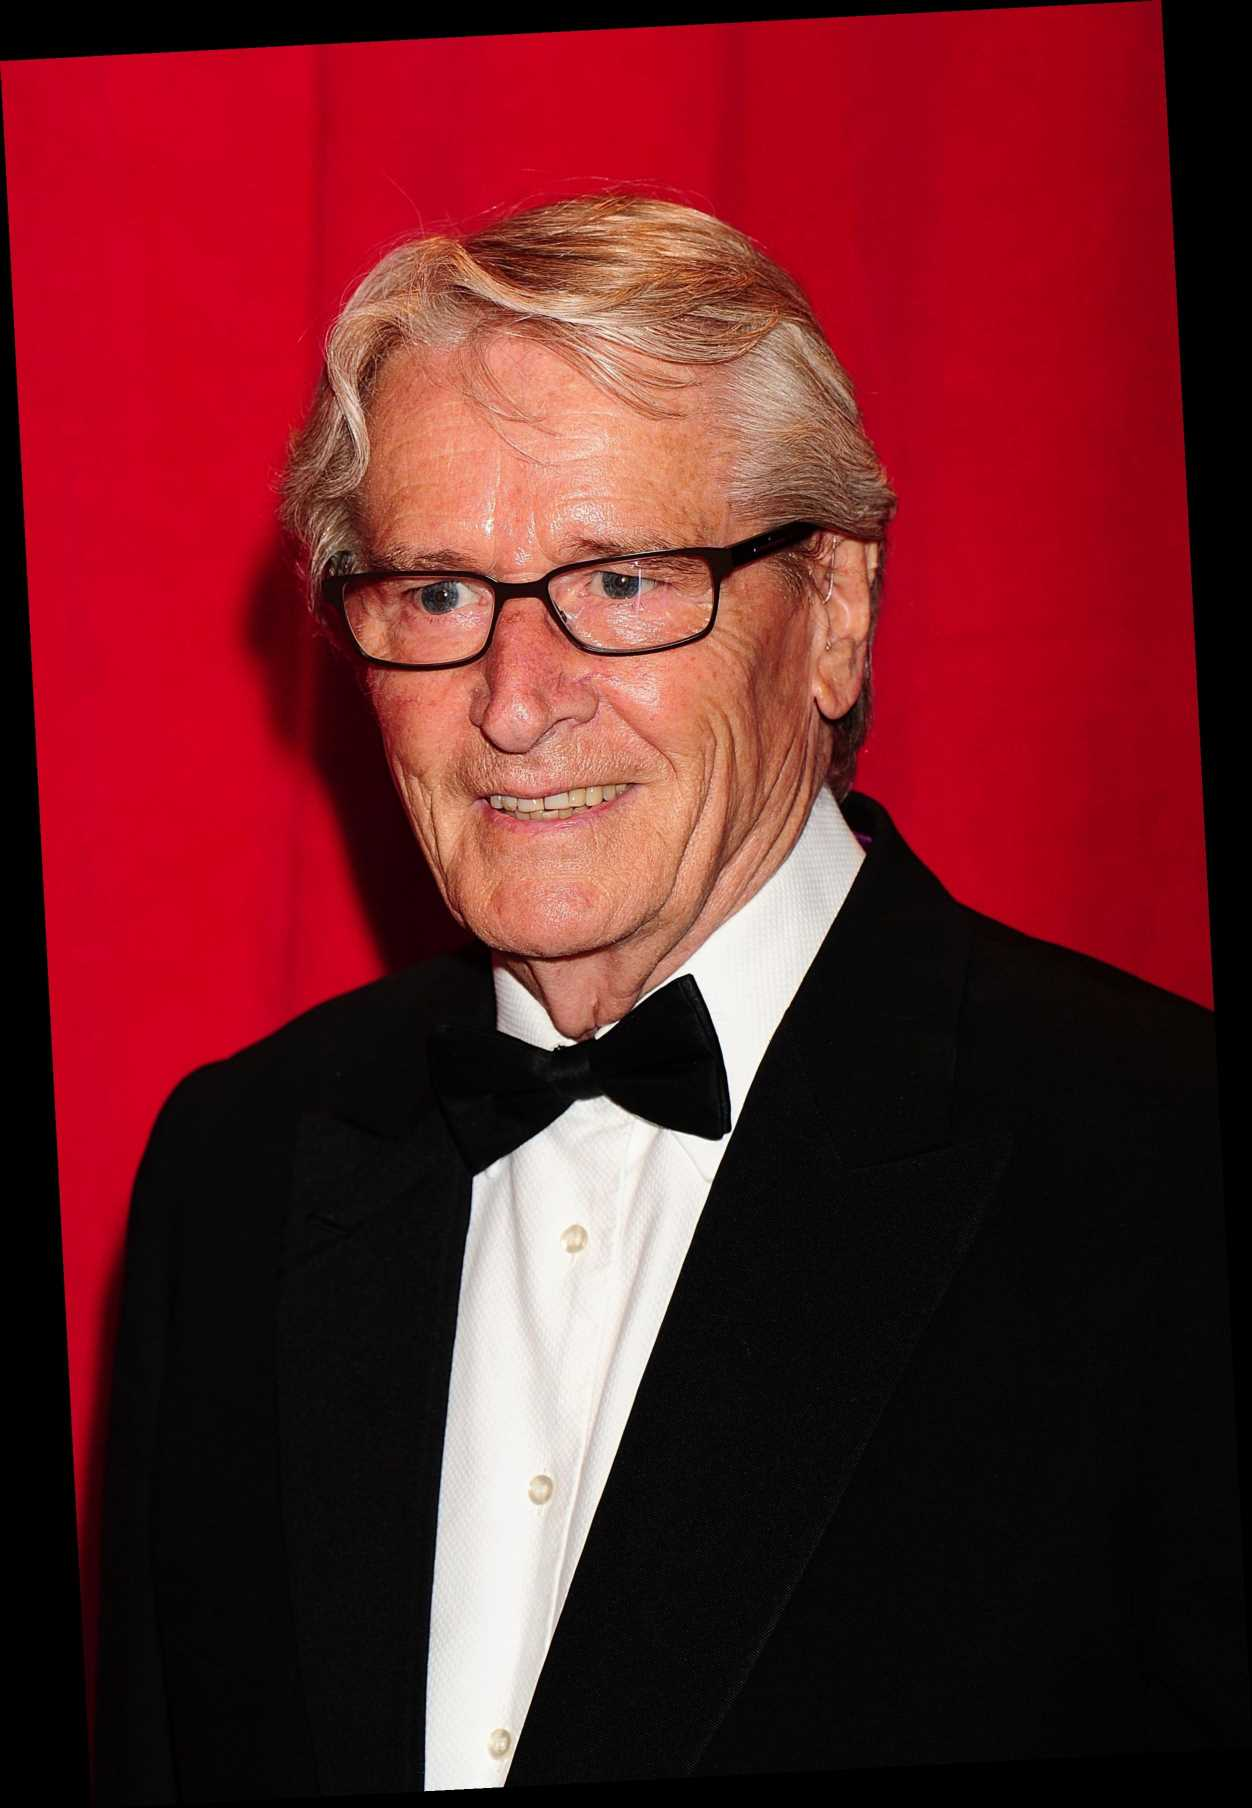 Coronation Street's Bill Roache insists soap will never go off the air during coronavirus pandemic – The Sun